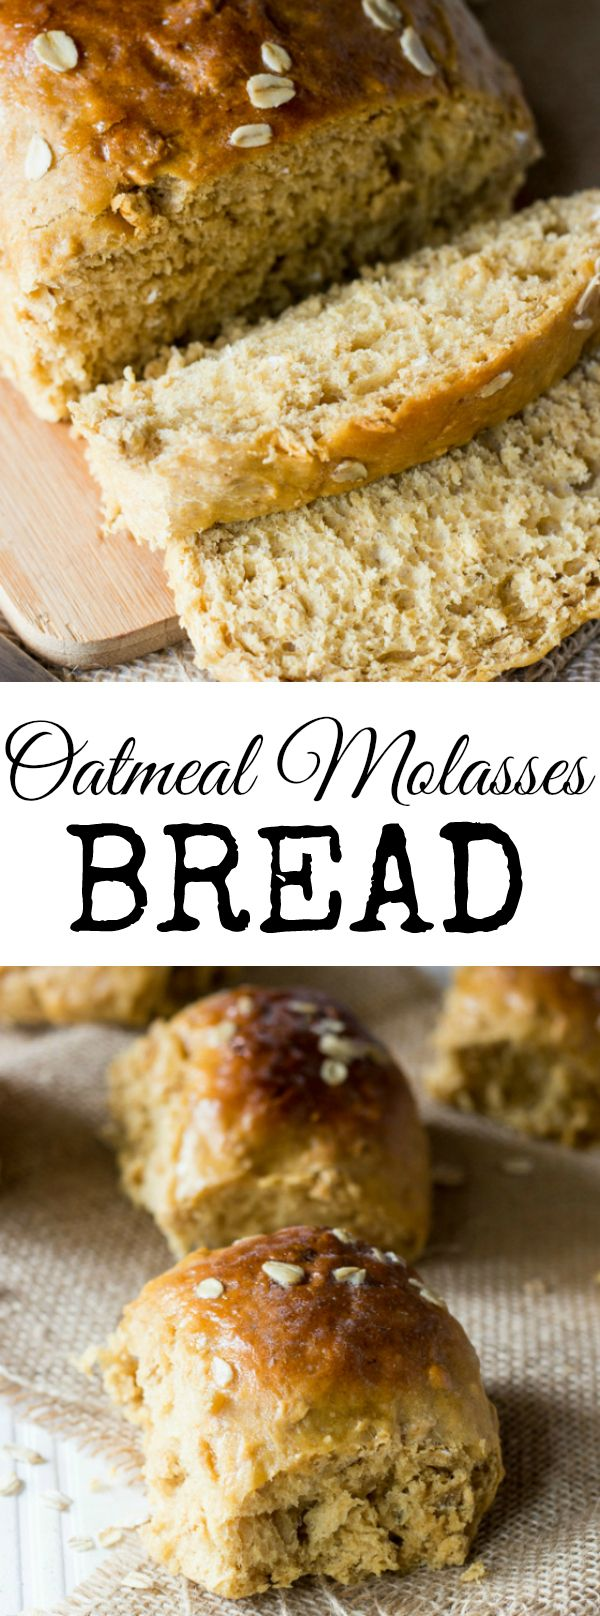 Sweet, soft and fluffy his Oatmeal Molasses Bread is a universal bread dough that works to make your favorite loaves, rolls or breadsticks.